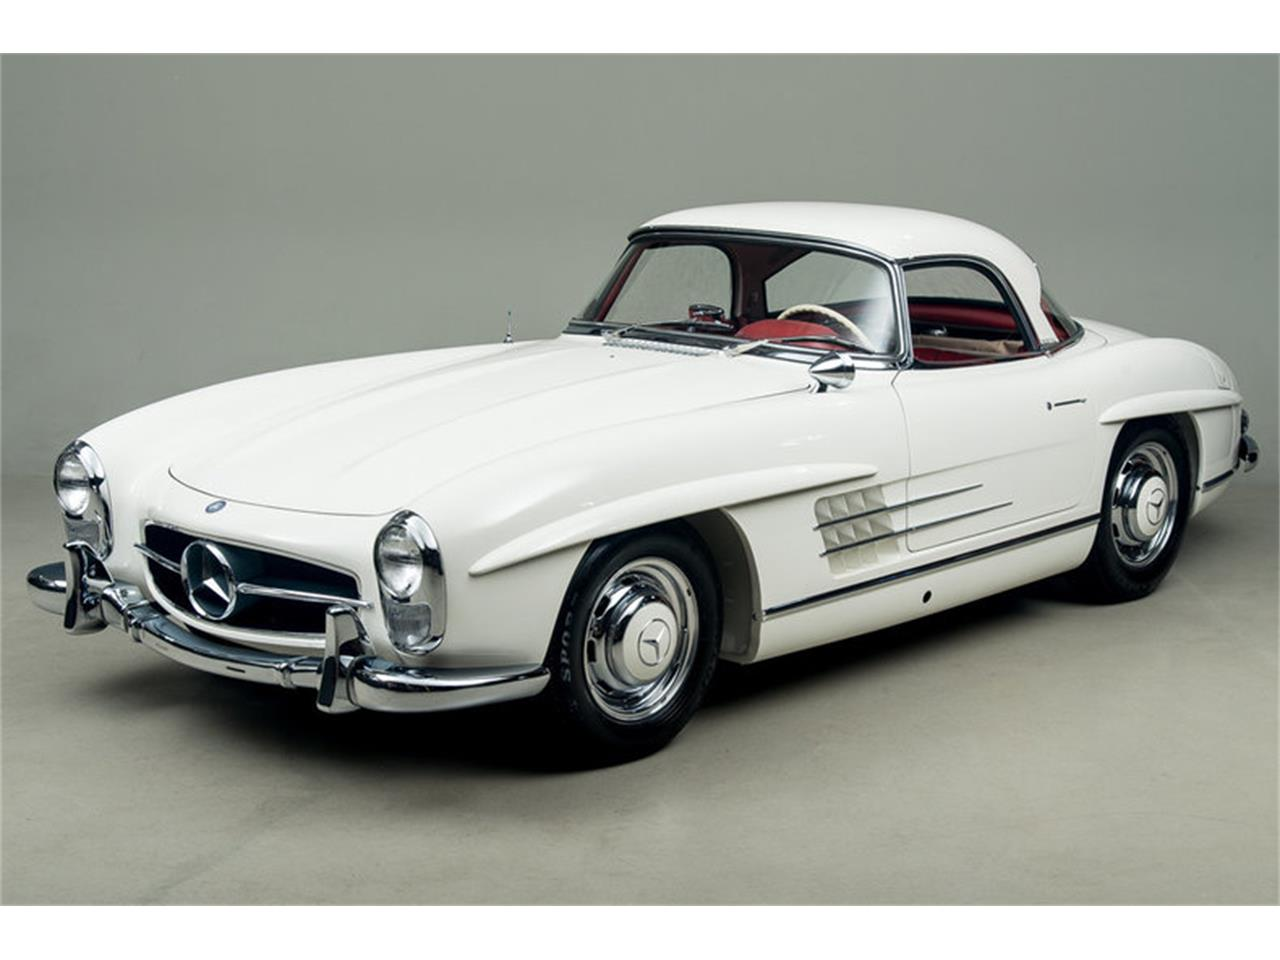 Large Picture of '63 Mercedes-Benz 300SL Roadster located in Scotts Valley California - EFPZ